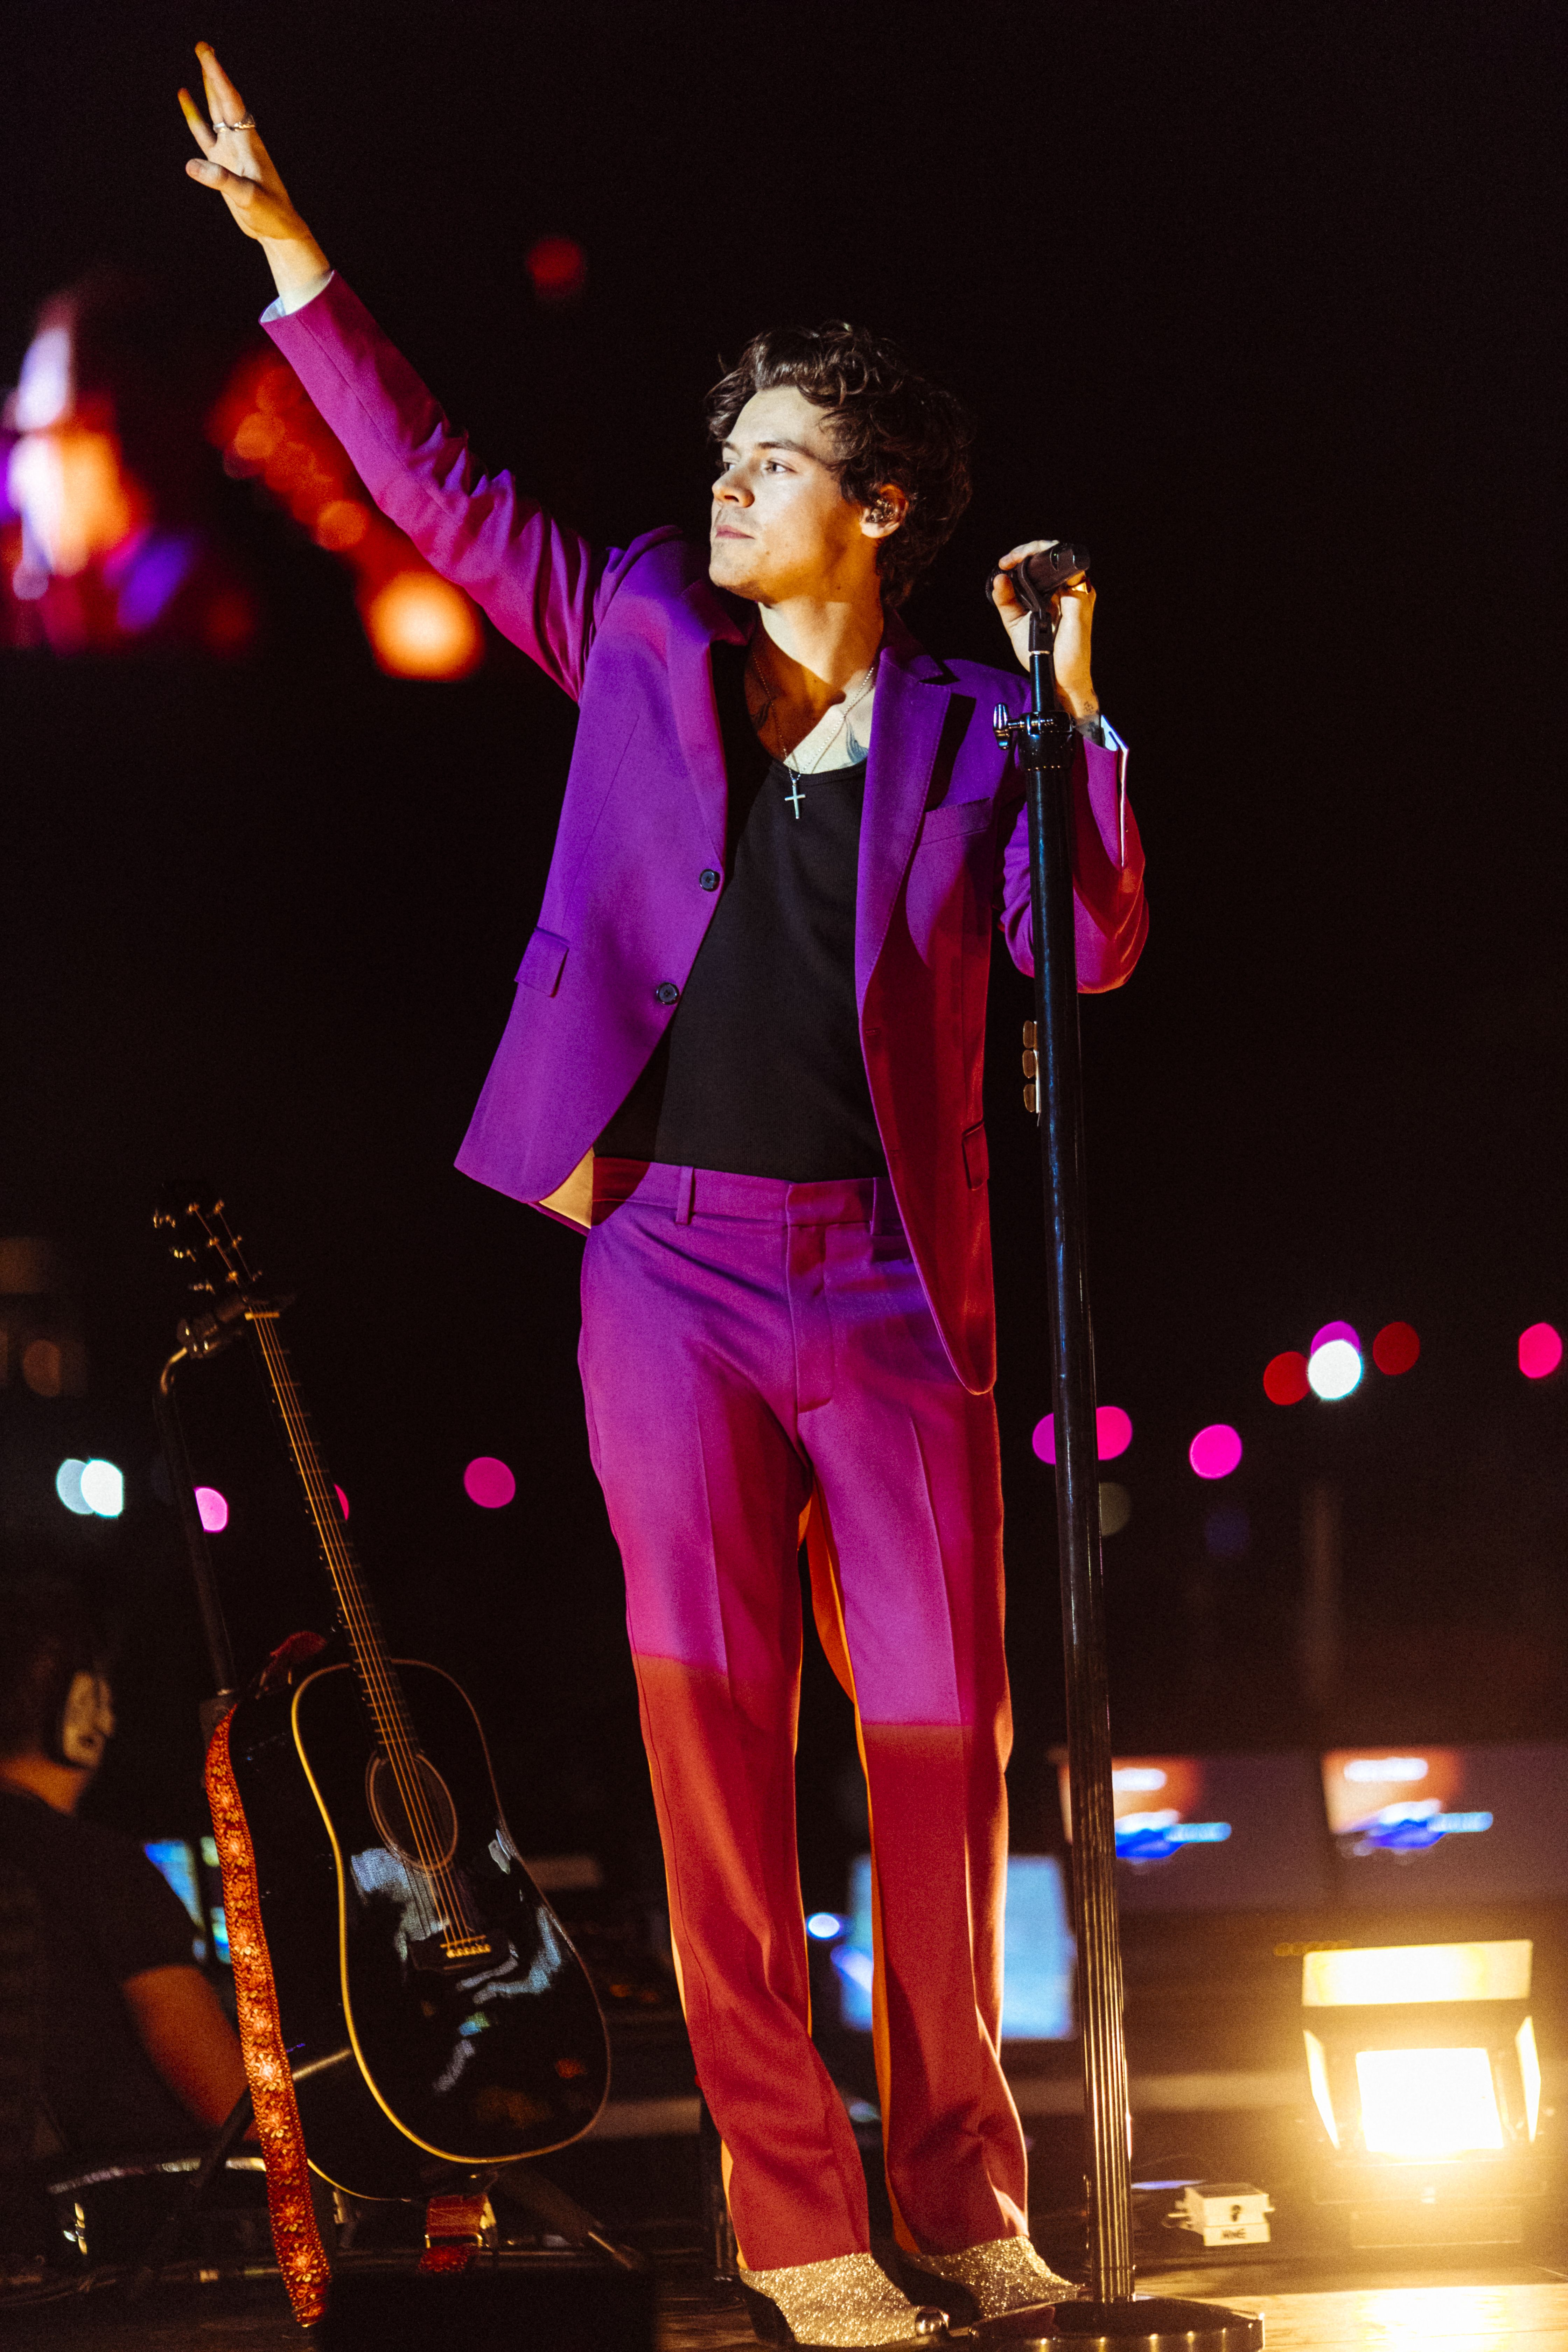 No shrinking violet singer Harry Styles, wearing a custom